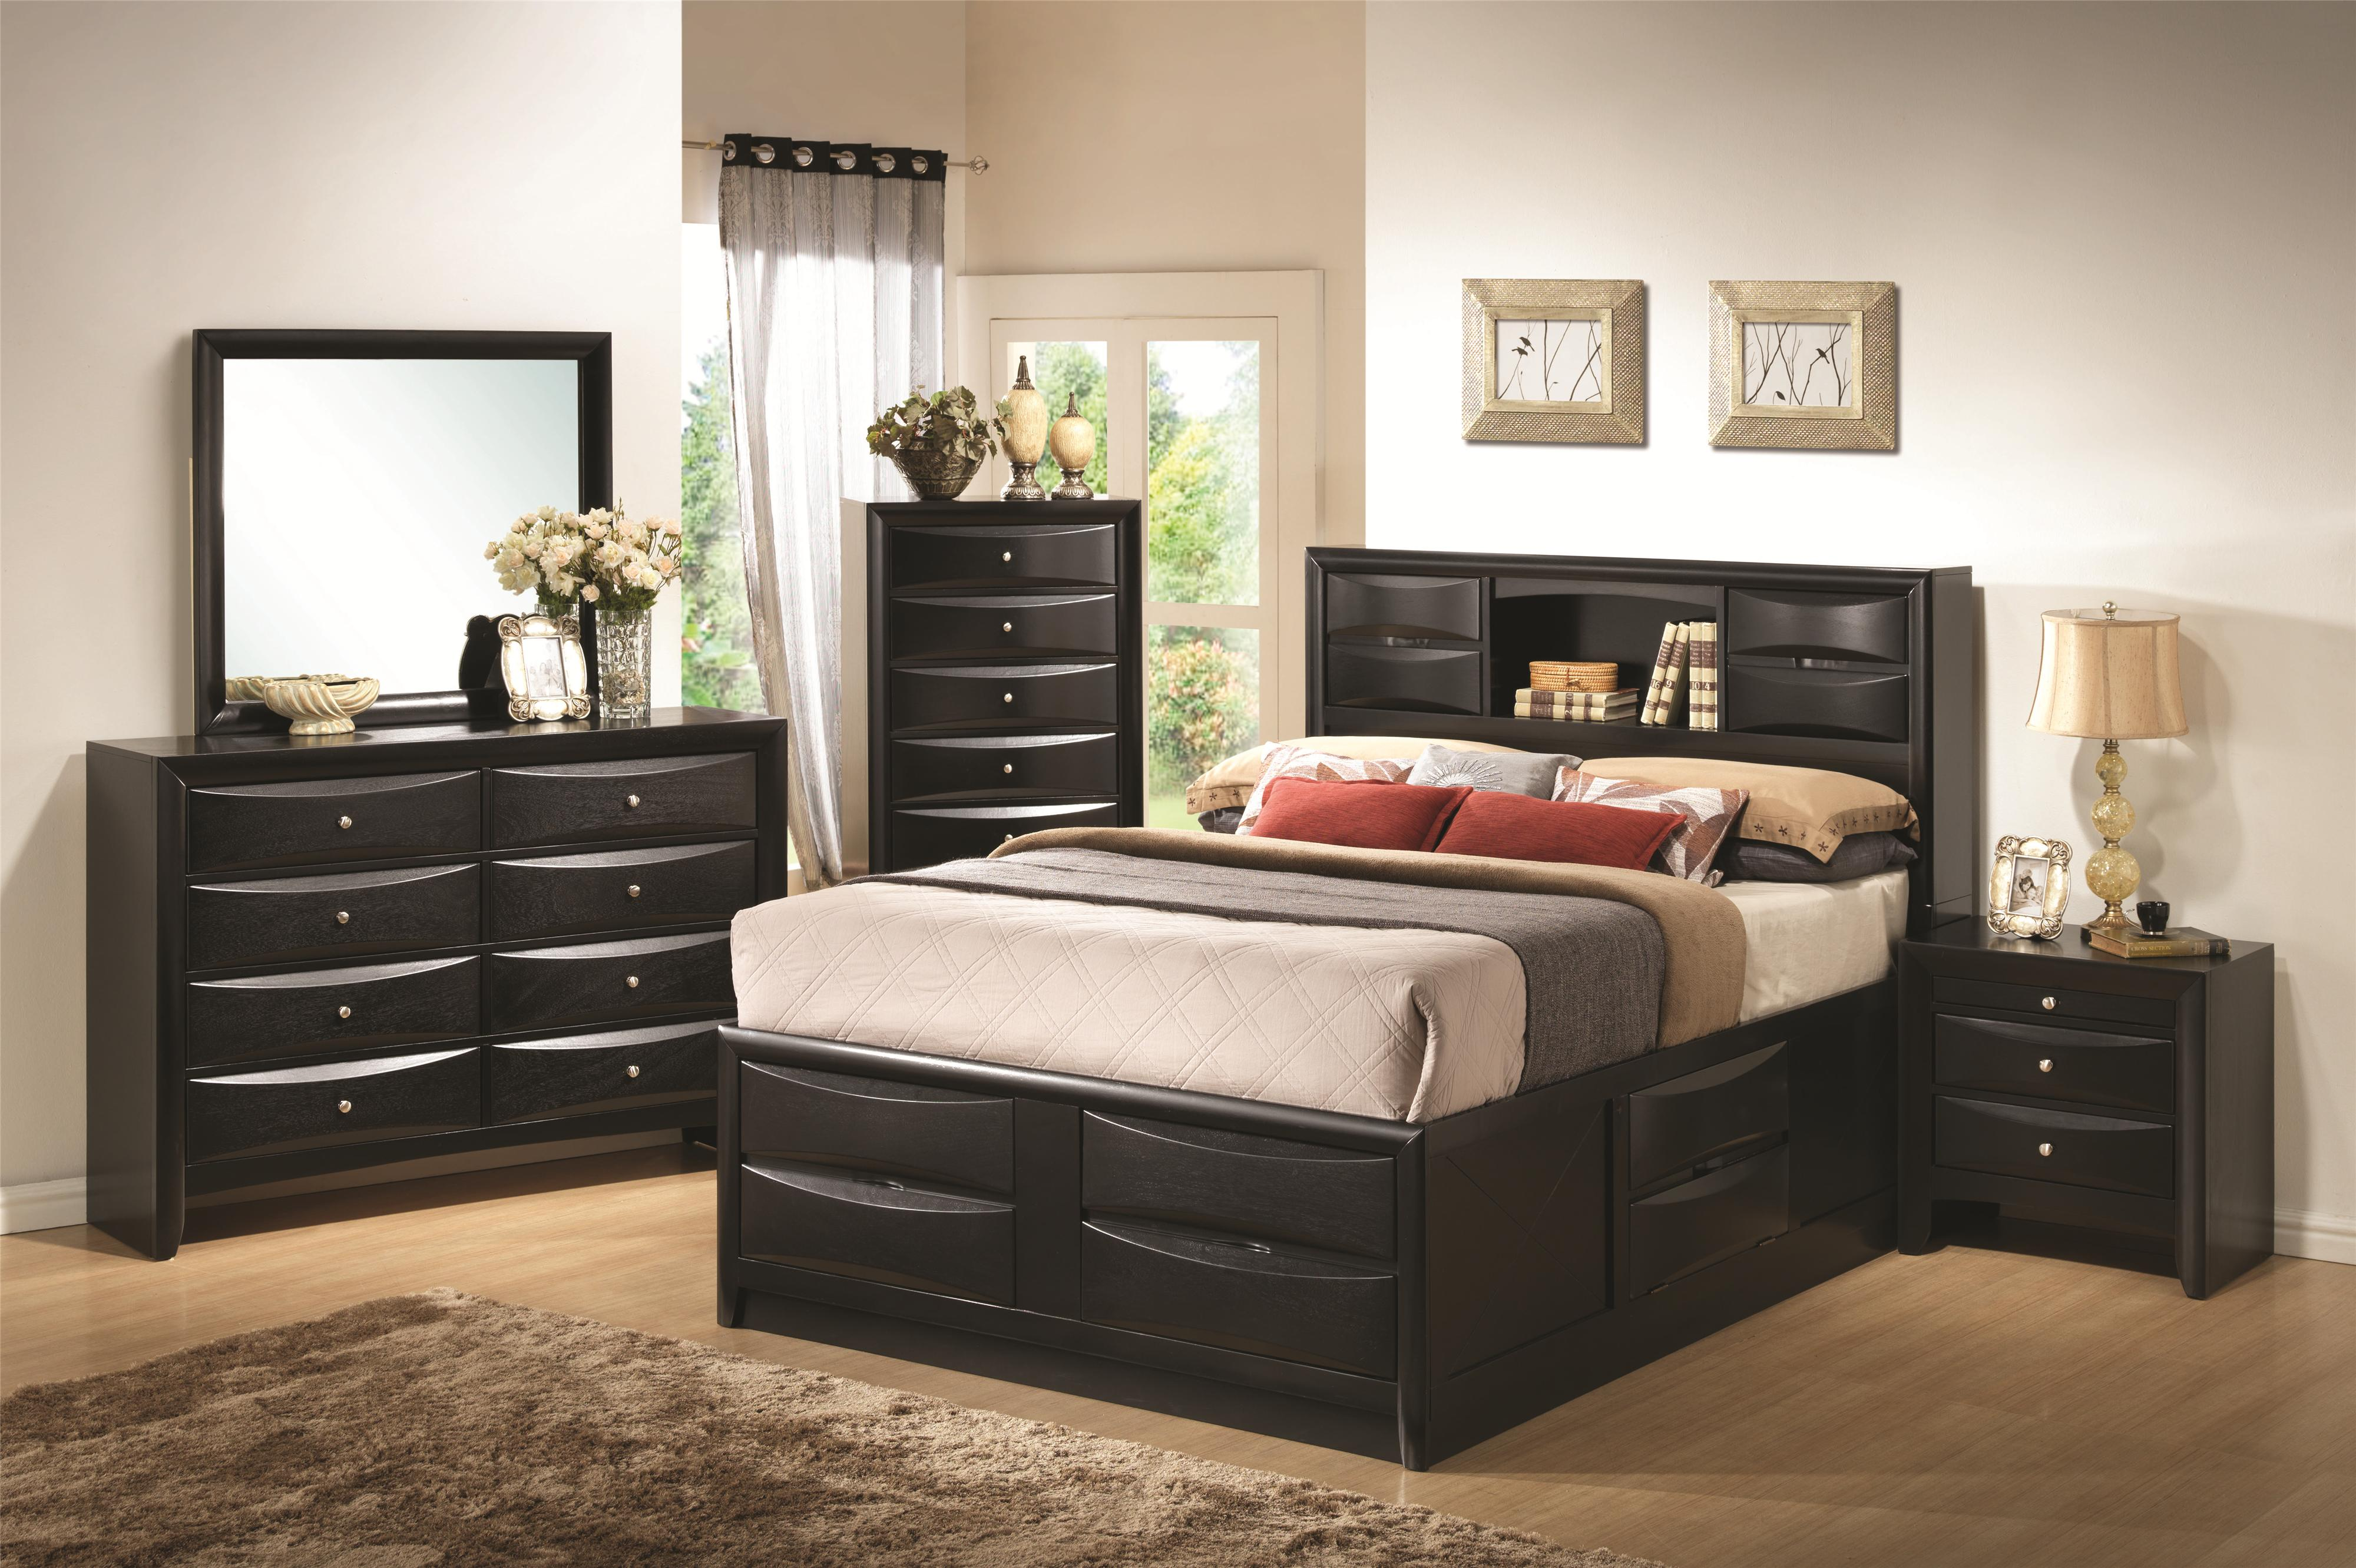 Briana King Bedroom Group by Coaster at Northeast Factory Direct